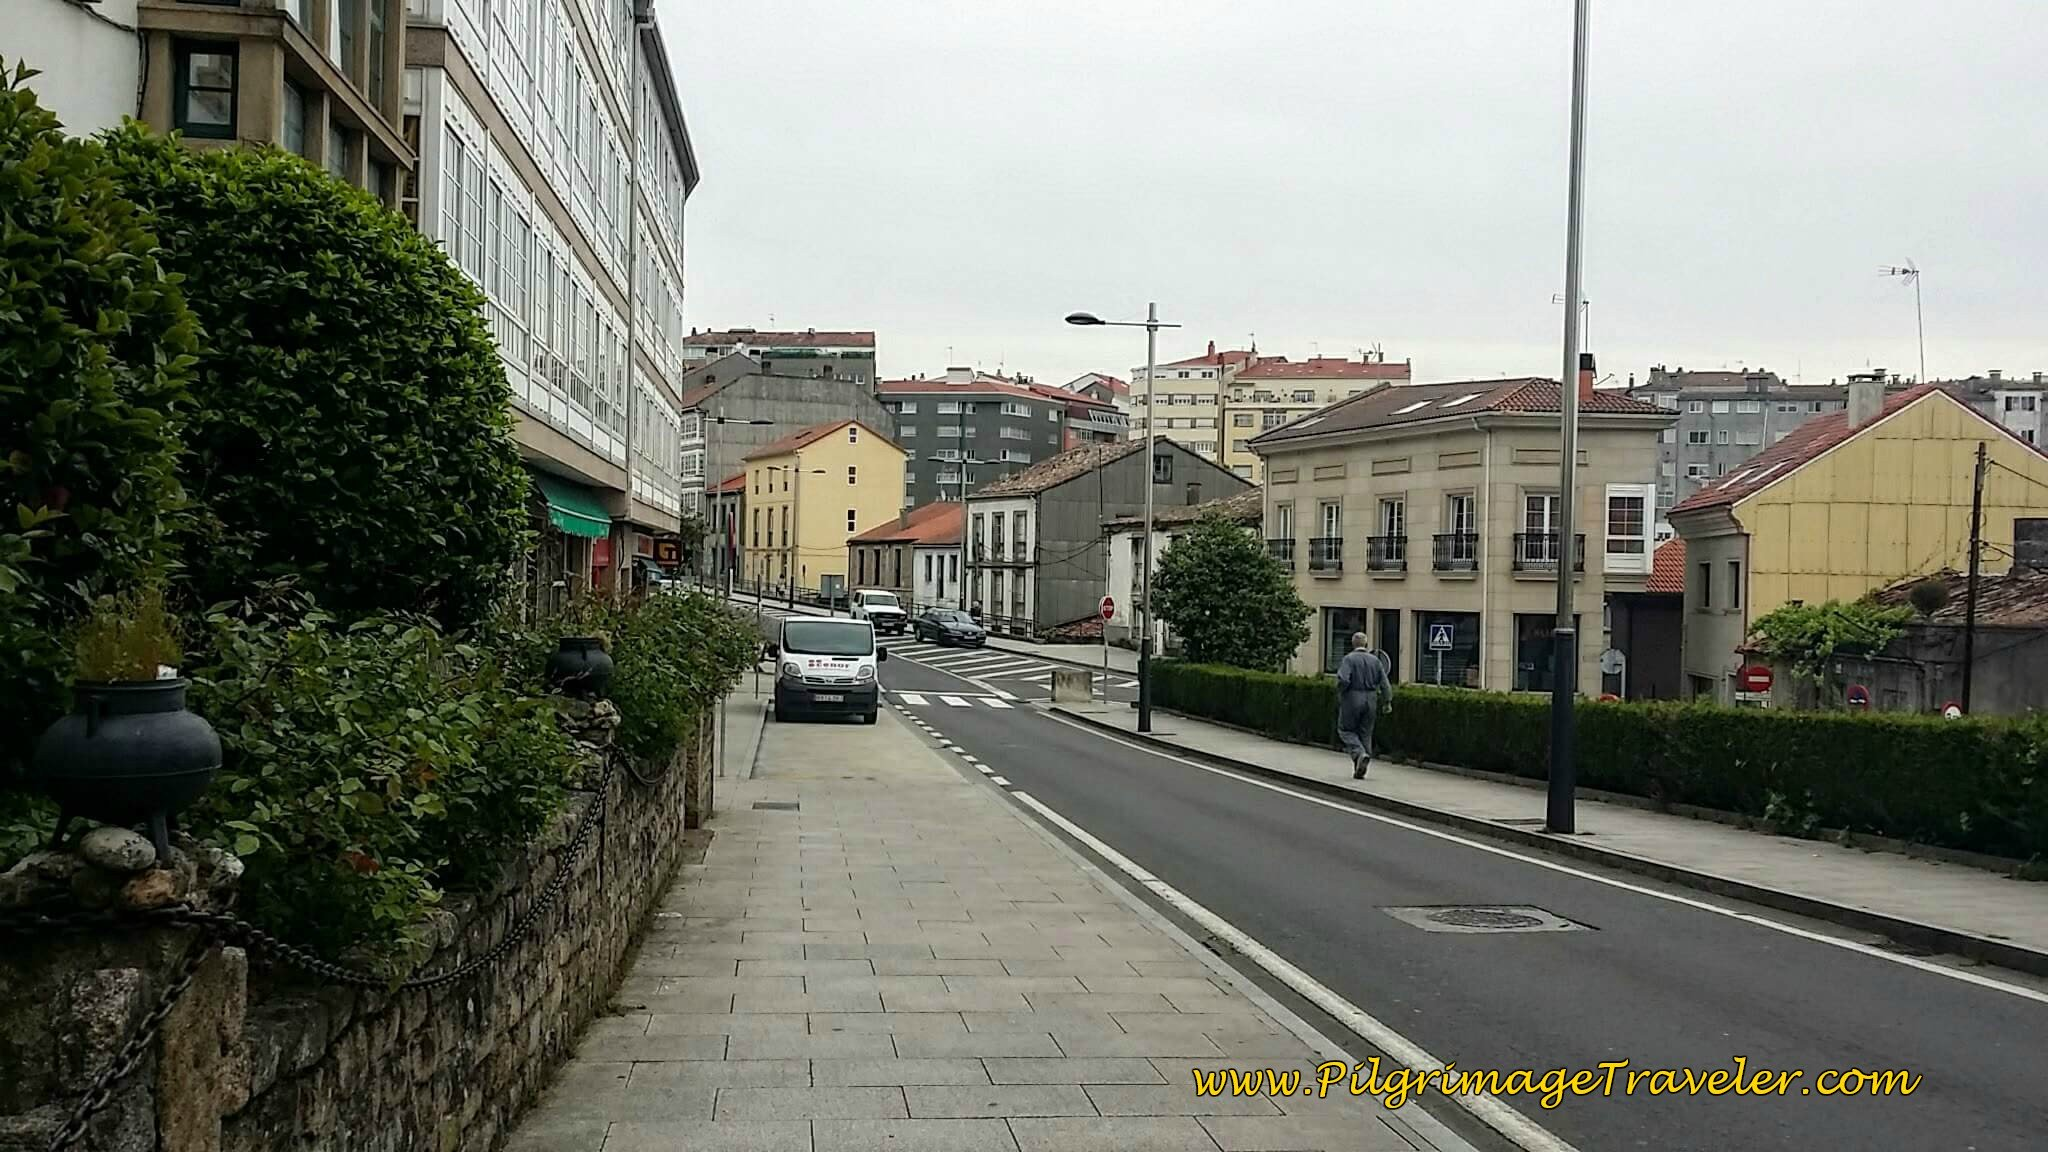 Join the Avenida de Vilagarcía in Santiago de Compostela on day twenty-five of the Portuguese Way